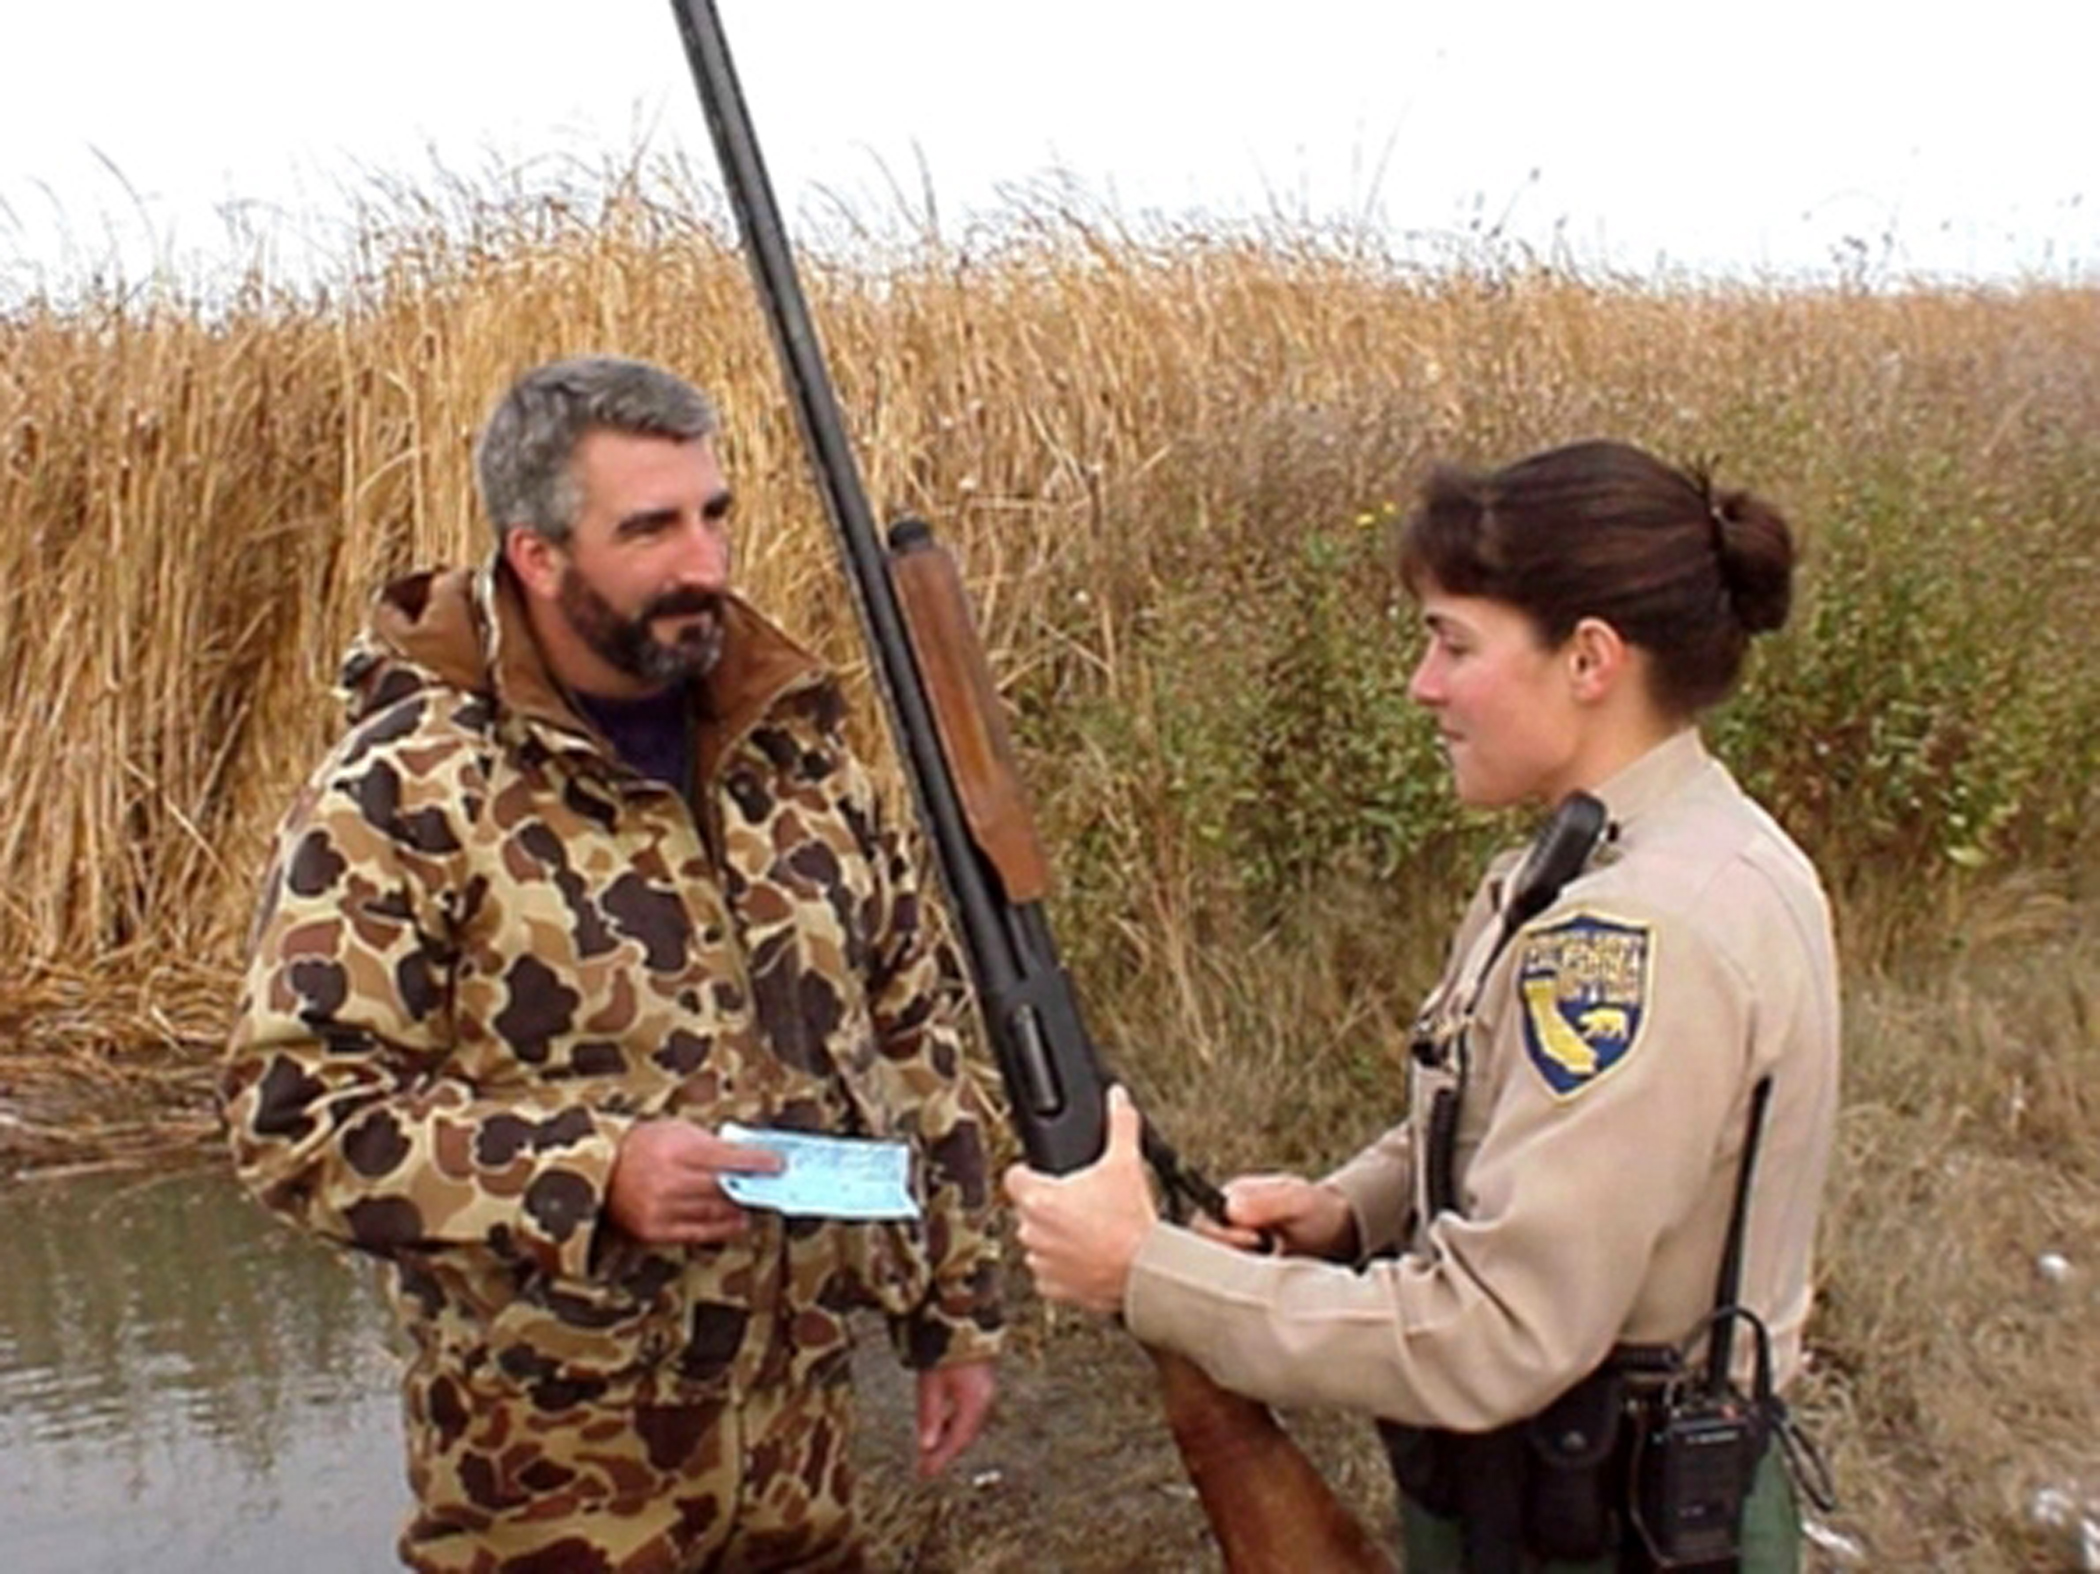 How to handle loaded firearms around wildlife officers for Ms fishing license